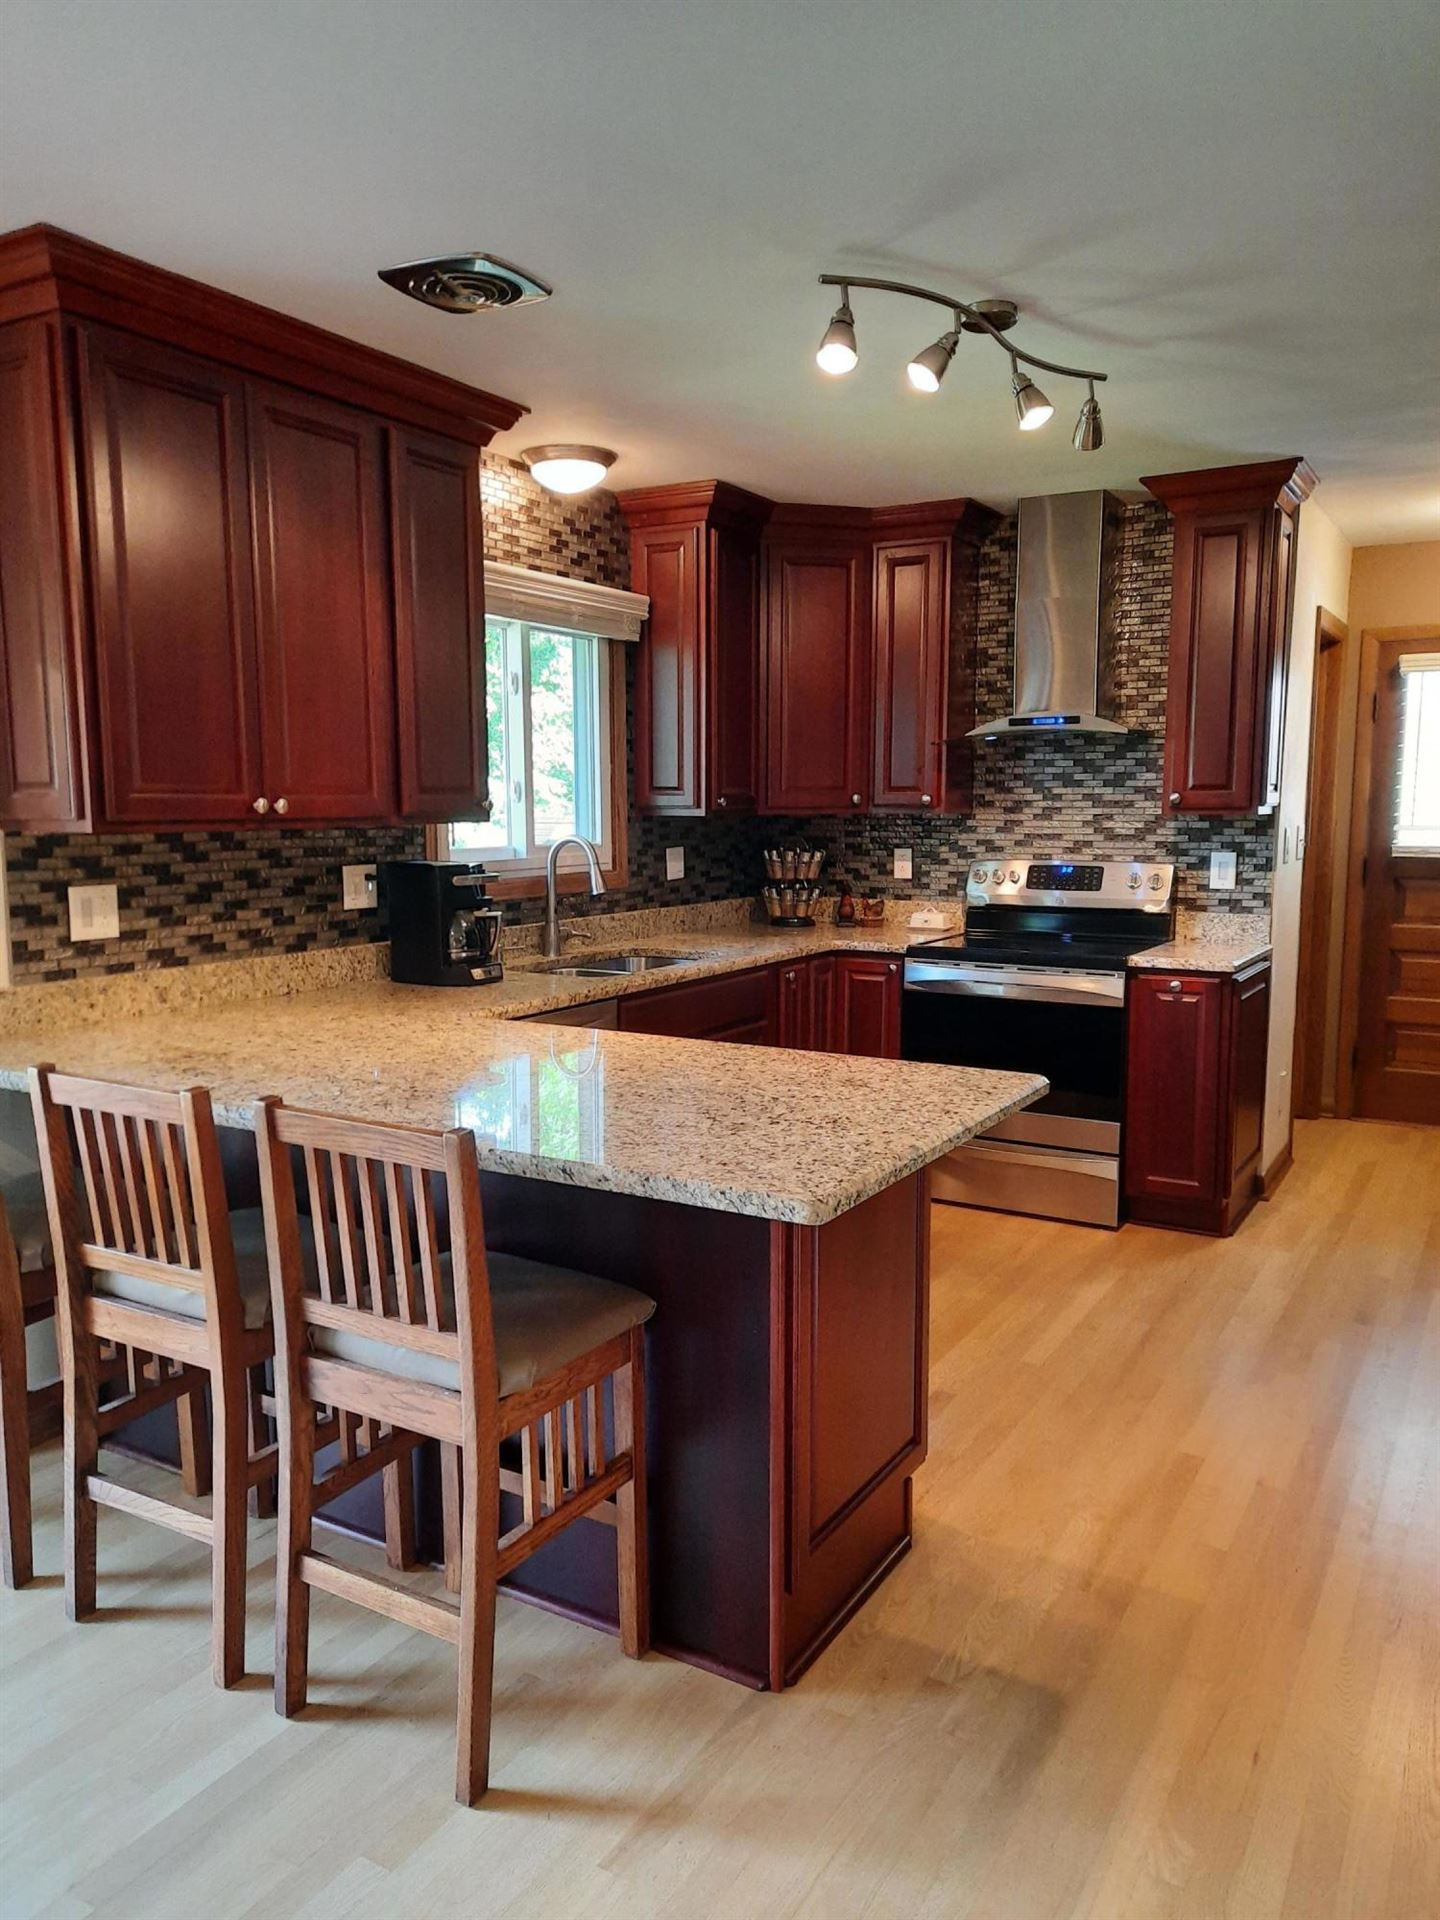 8220 S 68th St, Franklin, WI 53132 - #: 1706340